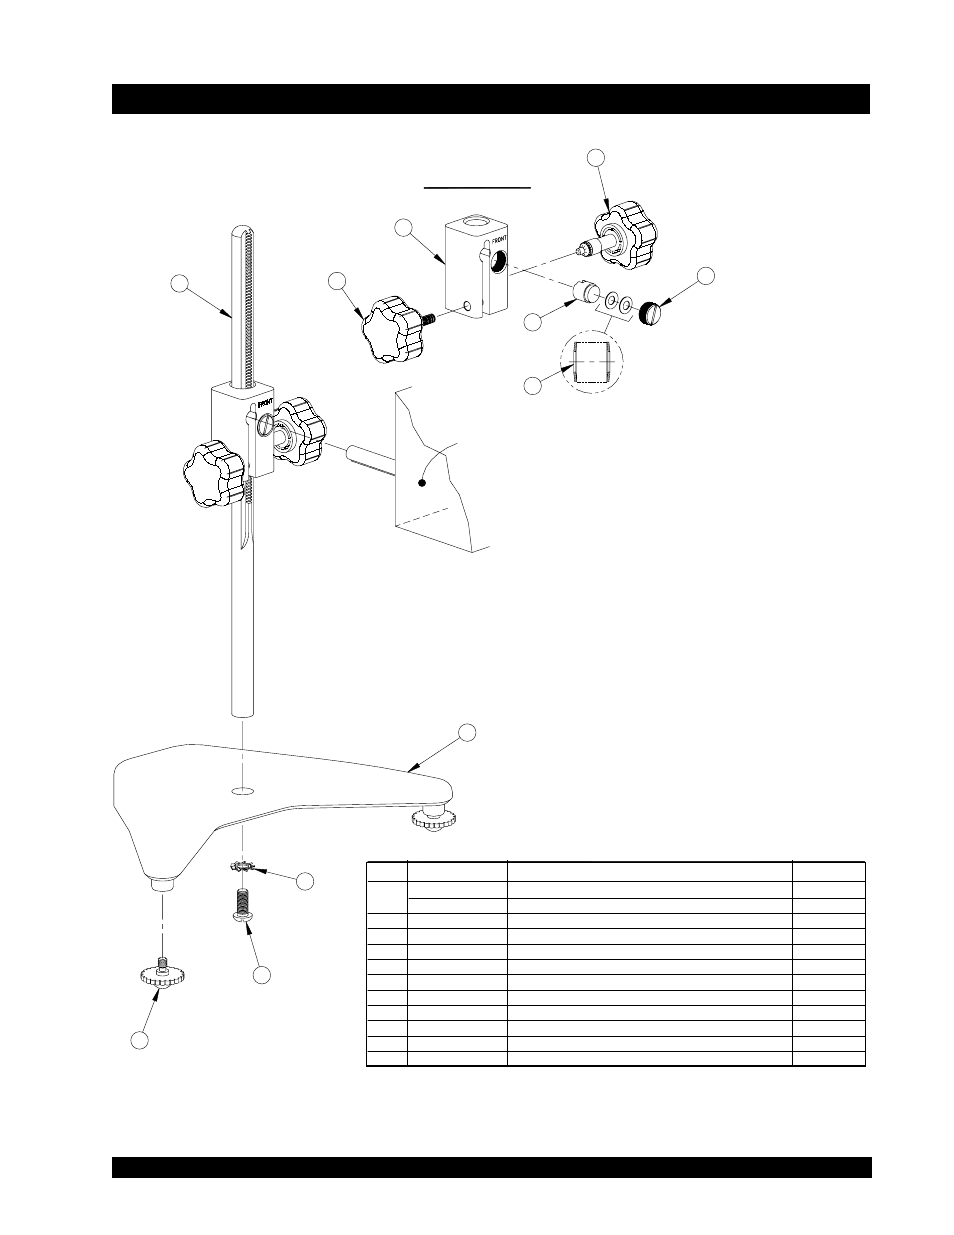 Appendix h, Laboratory stand with parts identification